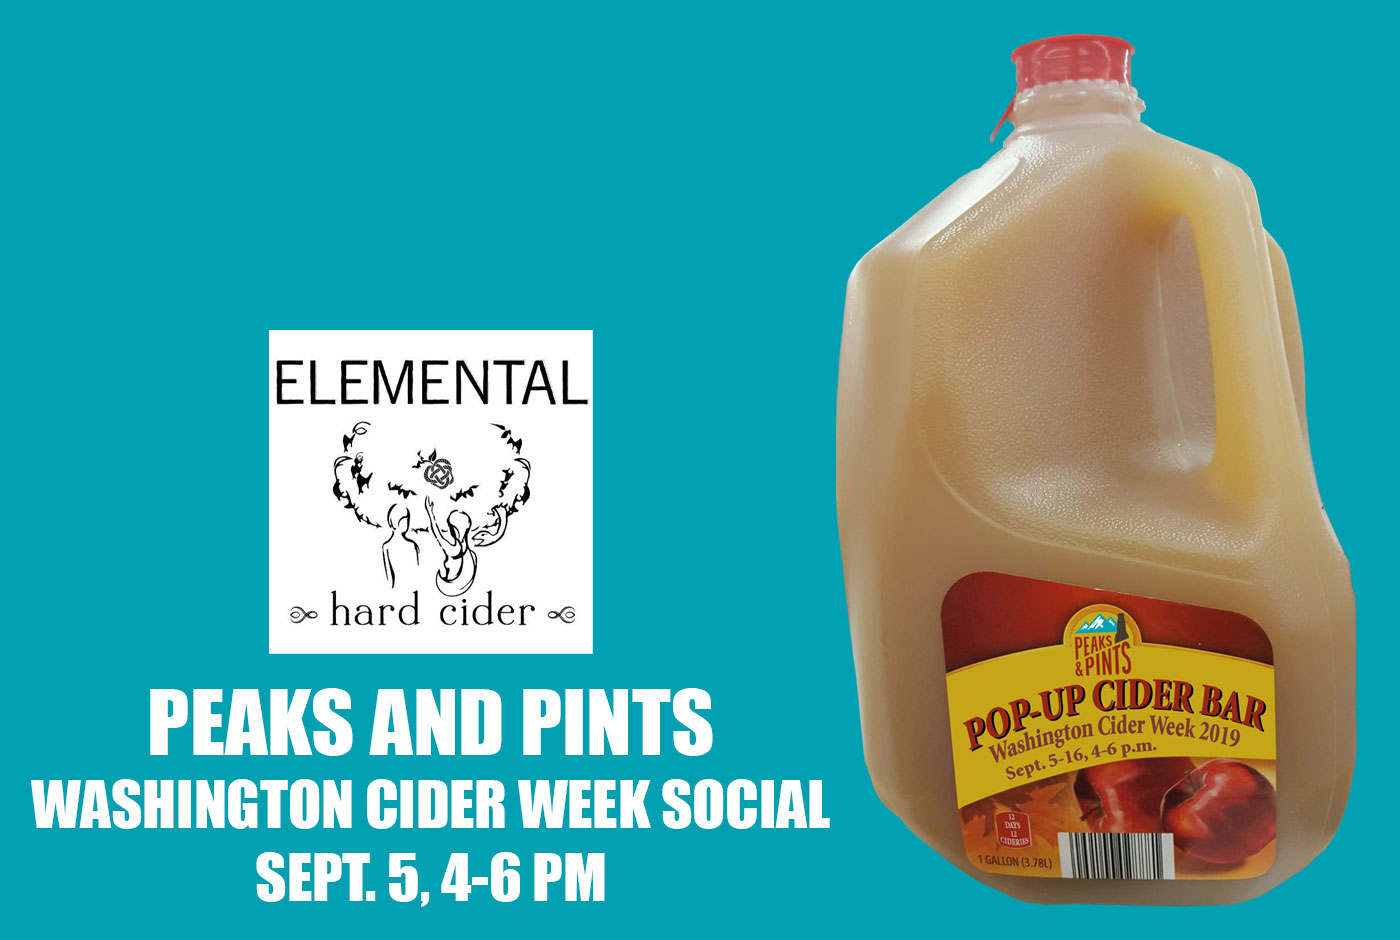 Peaks-and-Pints-Washington-Cider-Week-Socials-Elemental-calendar